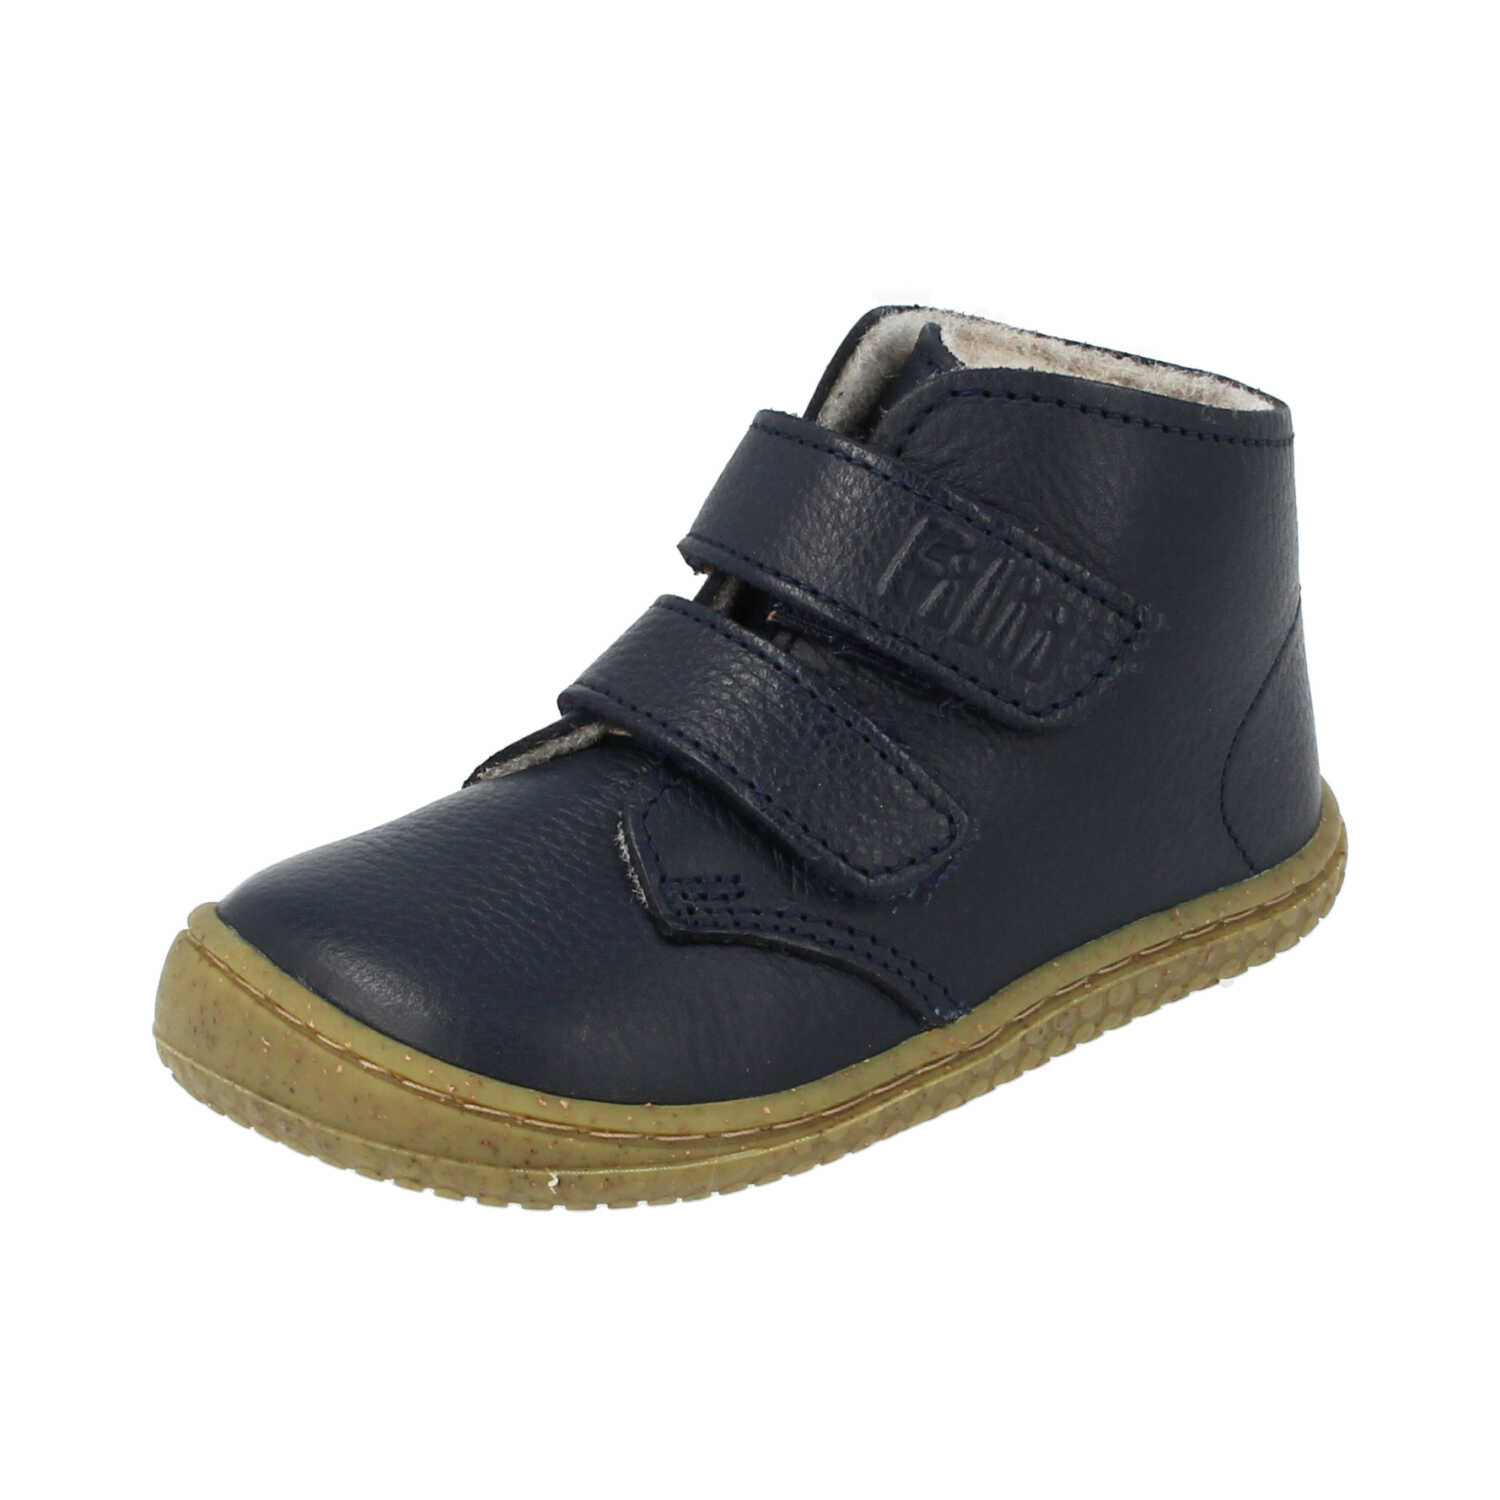 Filii Soft Feet Barefoot winter shoes Navy, Size 20